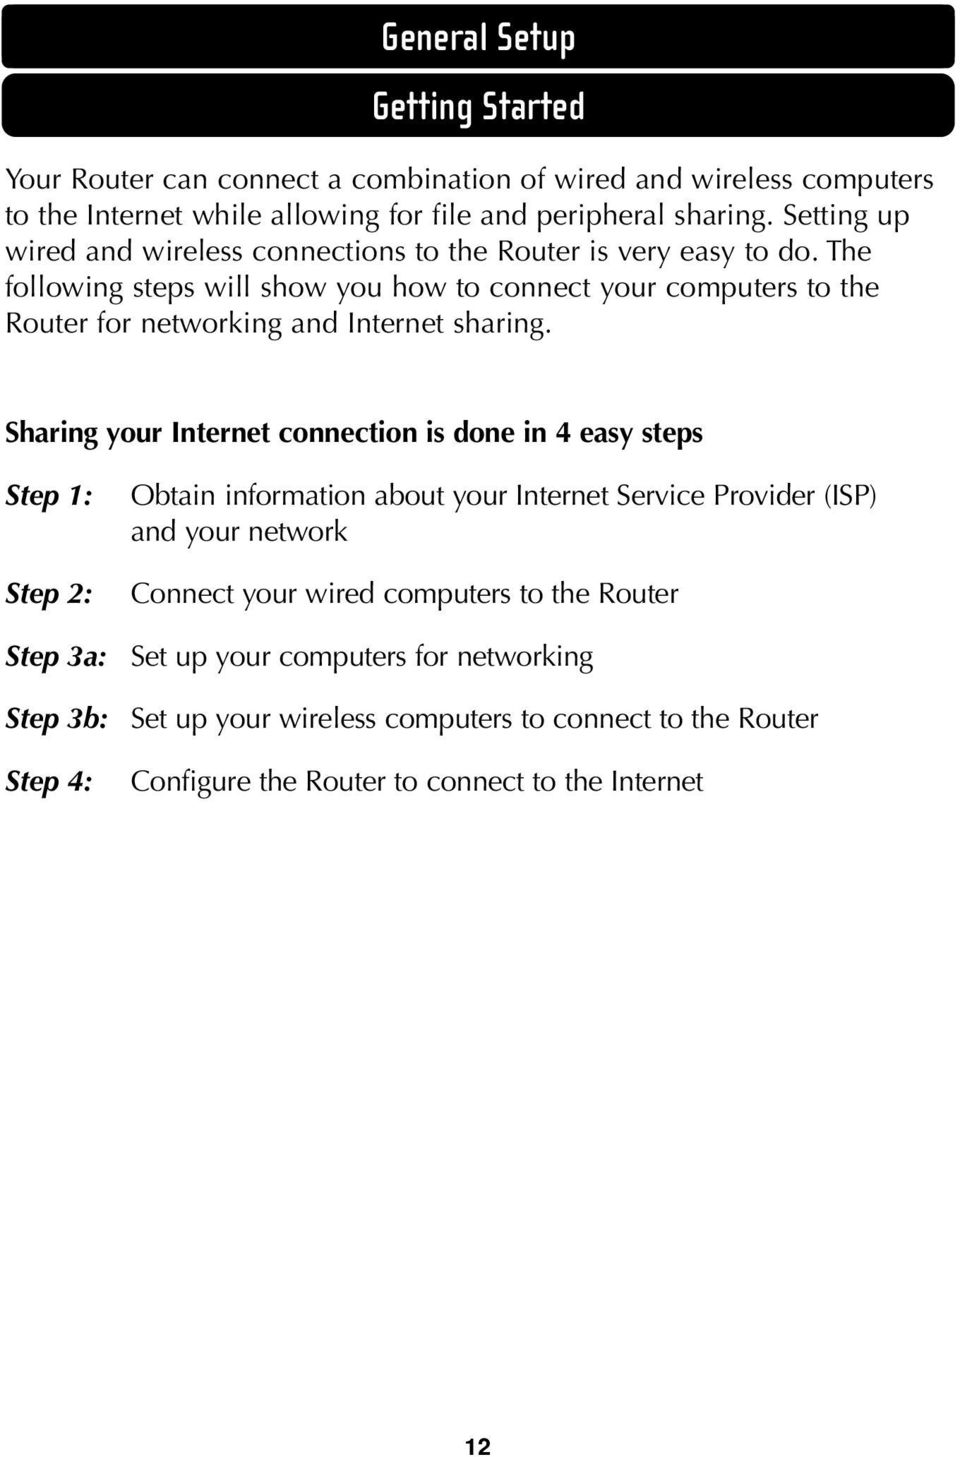 The following steps will show you how to connect your computers to the Router for networking and Internet sharing.